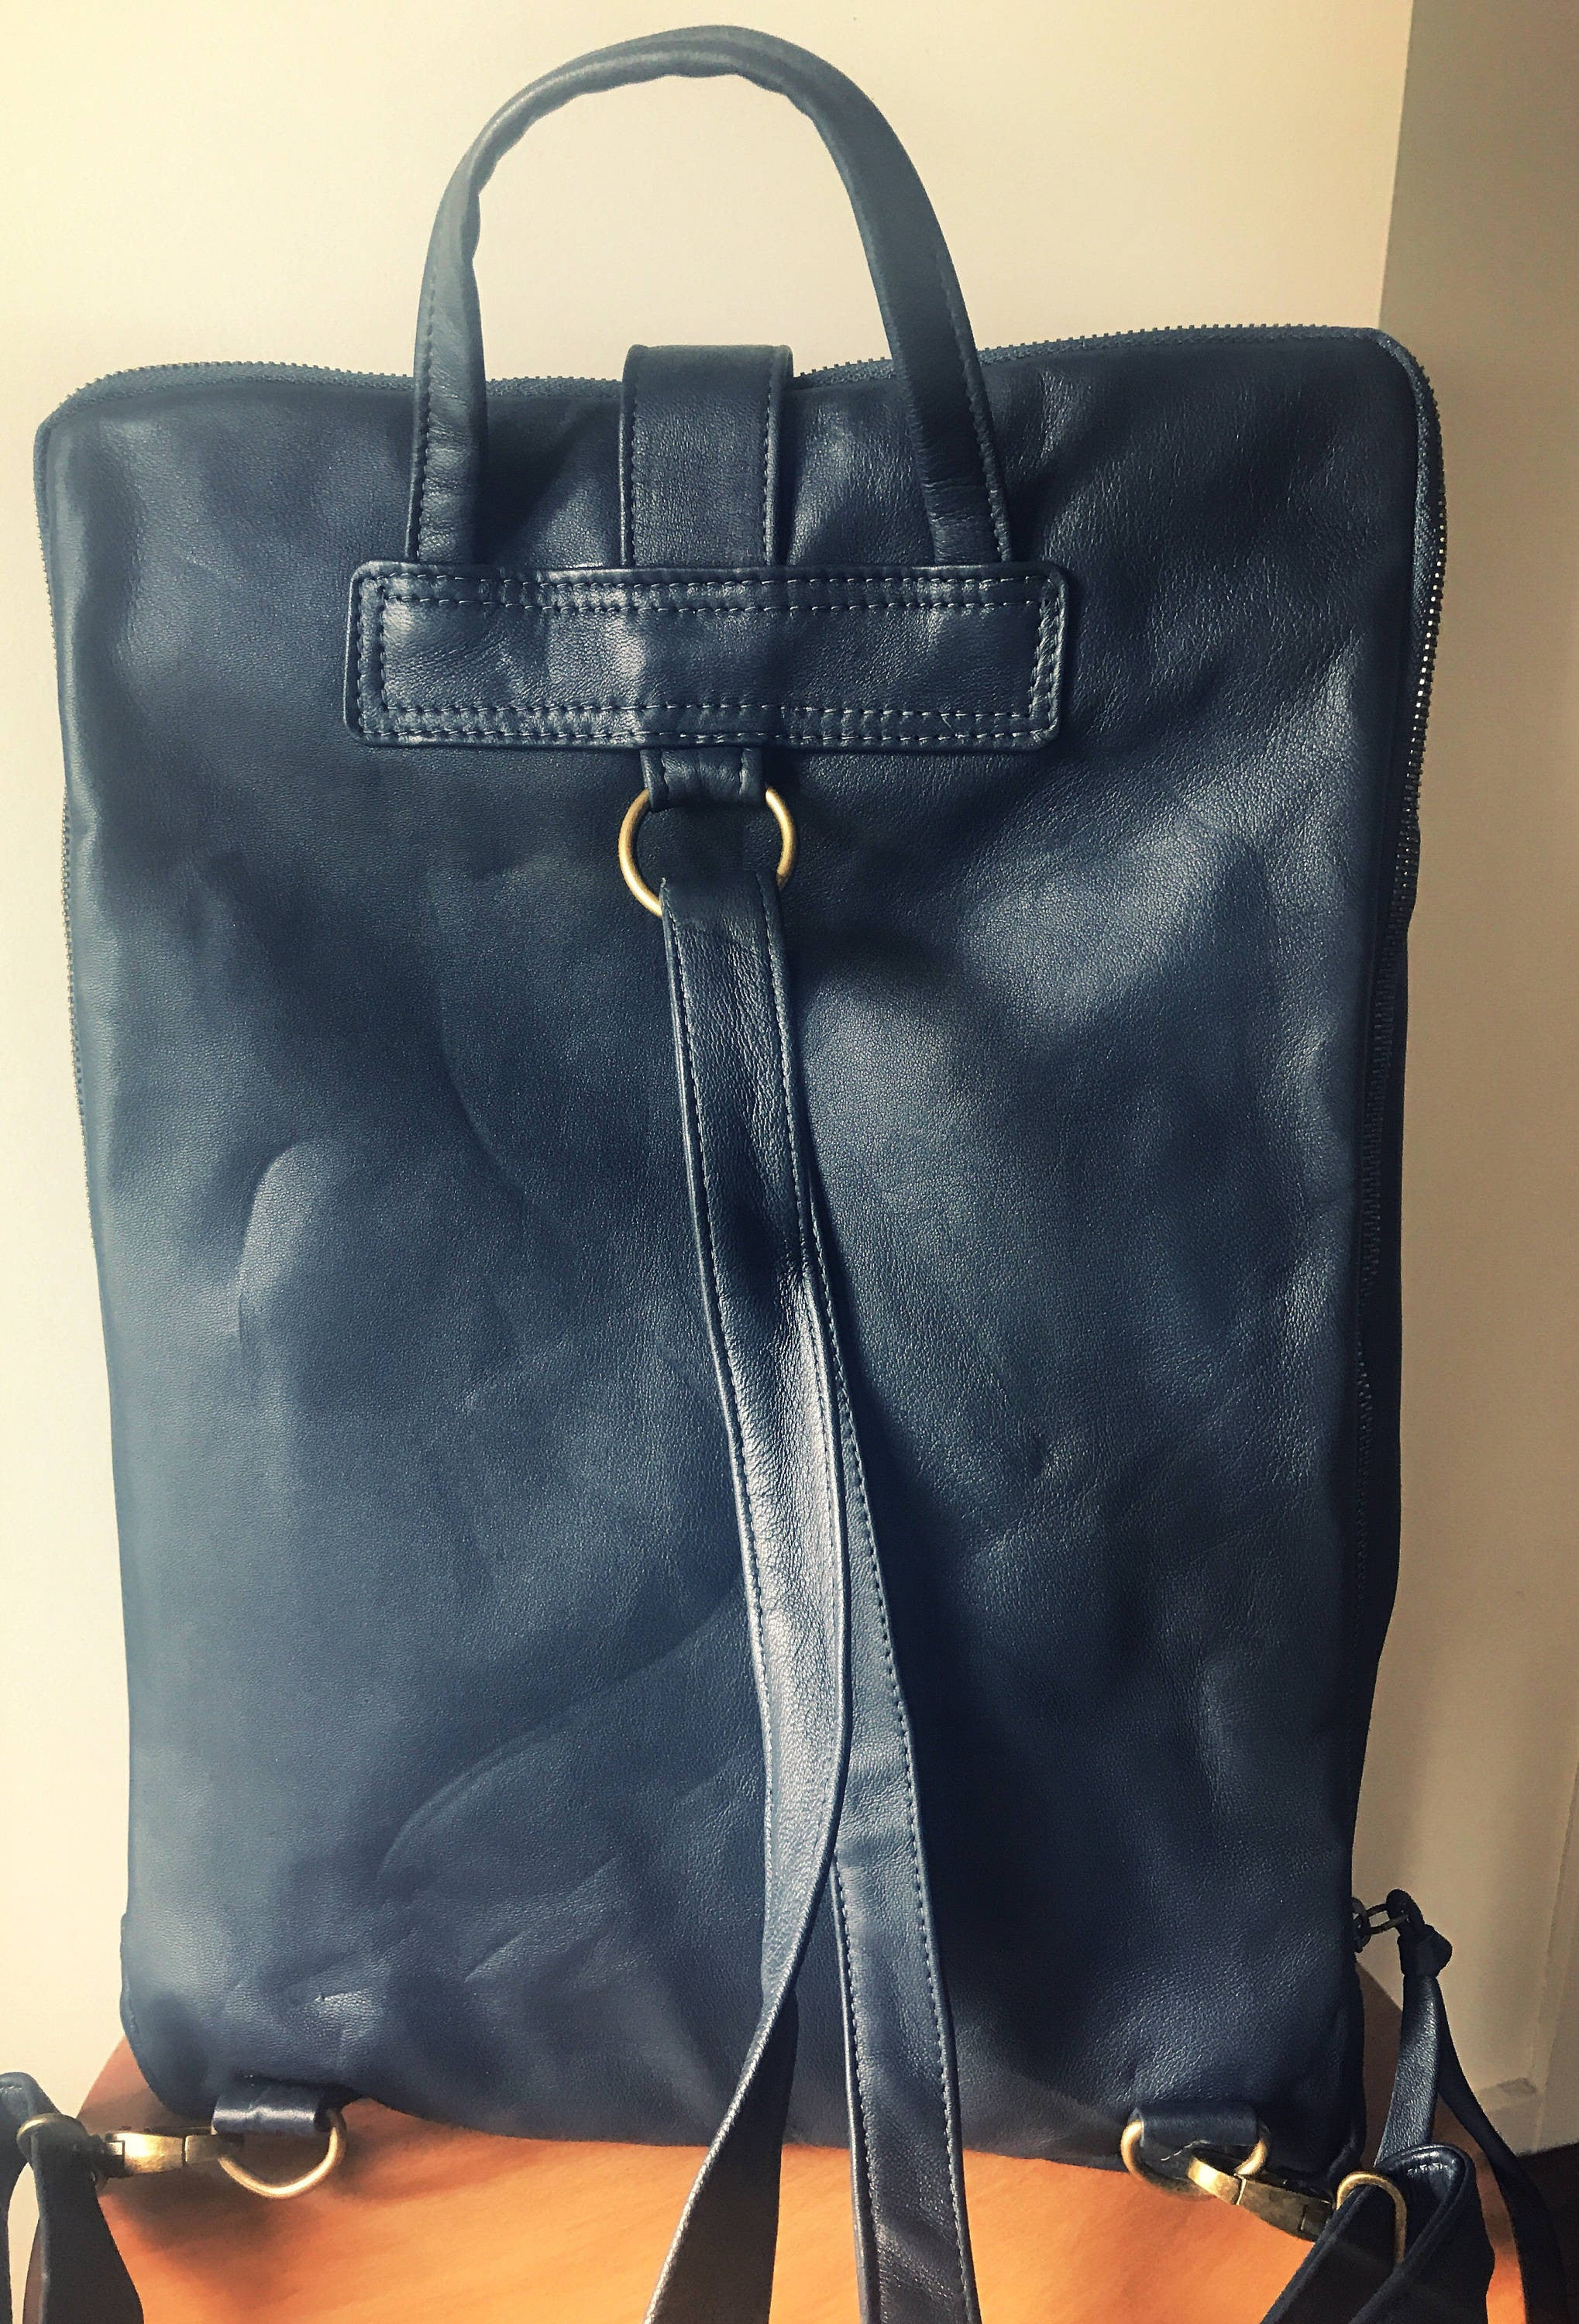 The Siena-Leather backpack handbag,handmade and able to be customised.